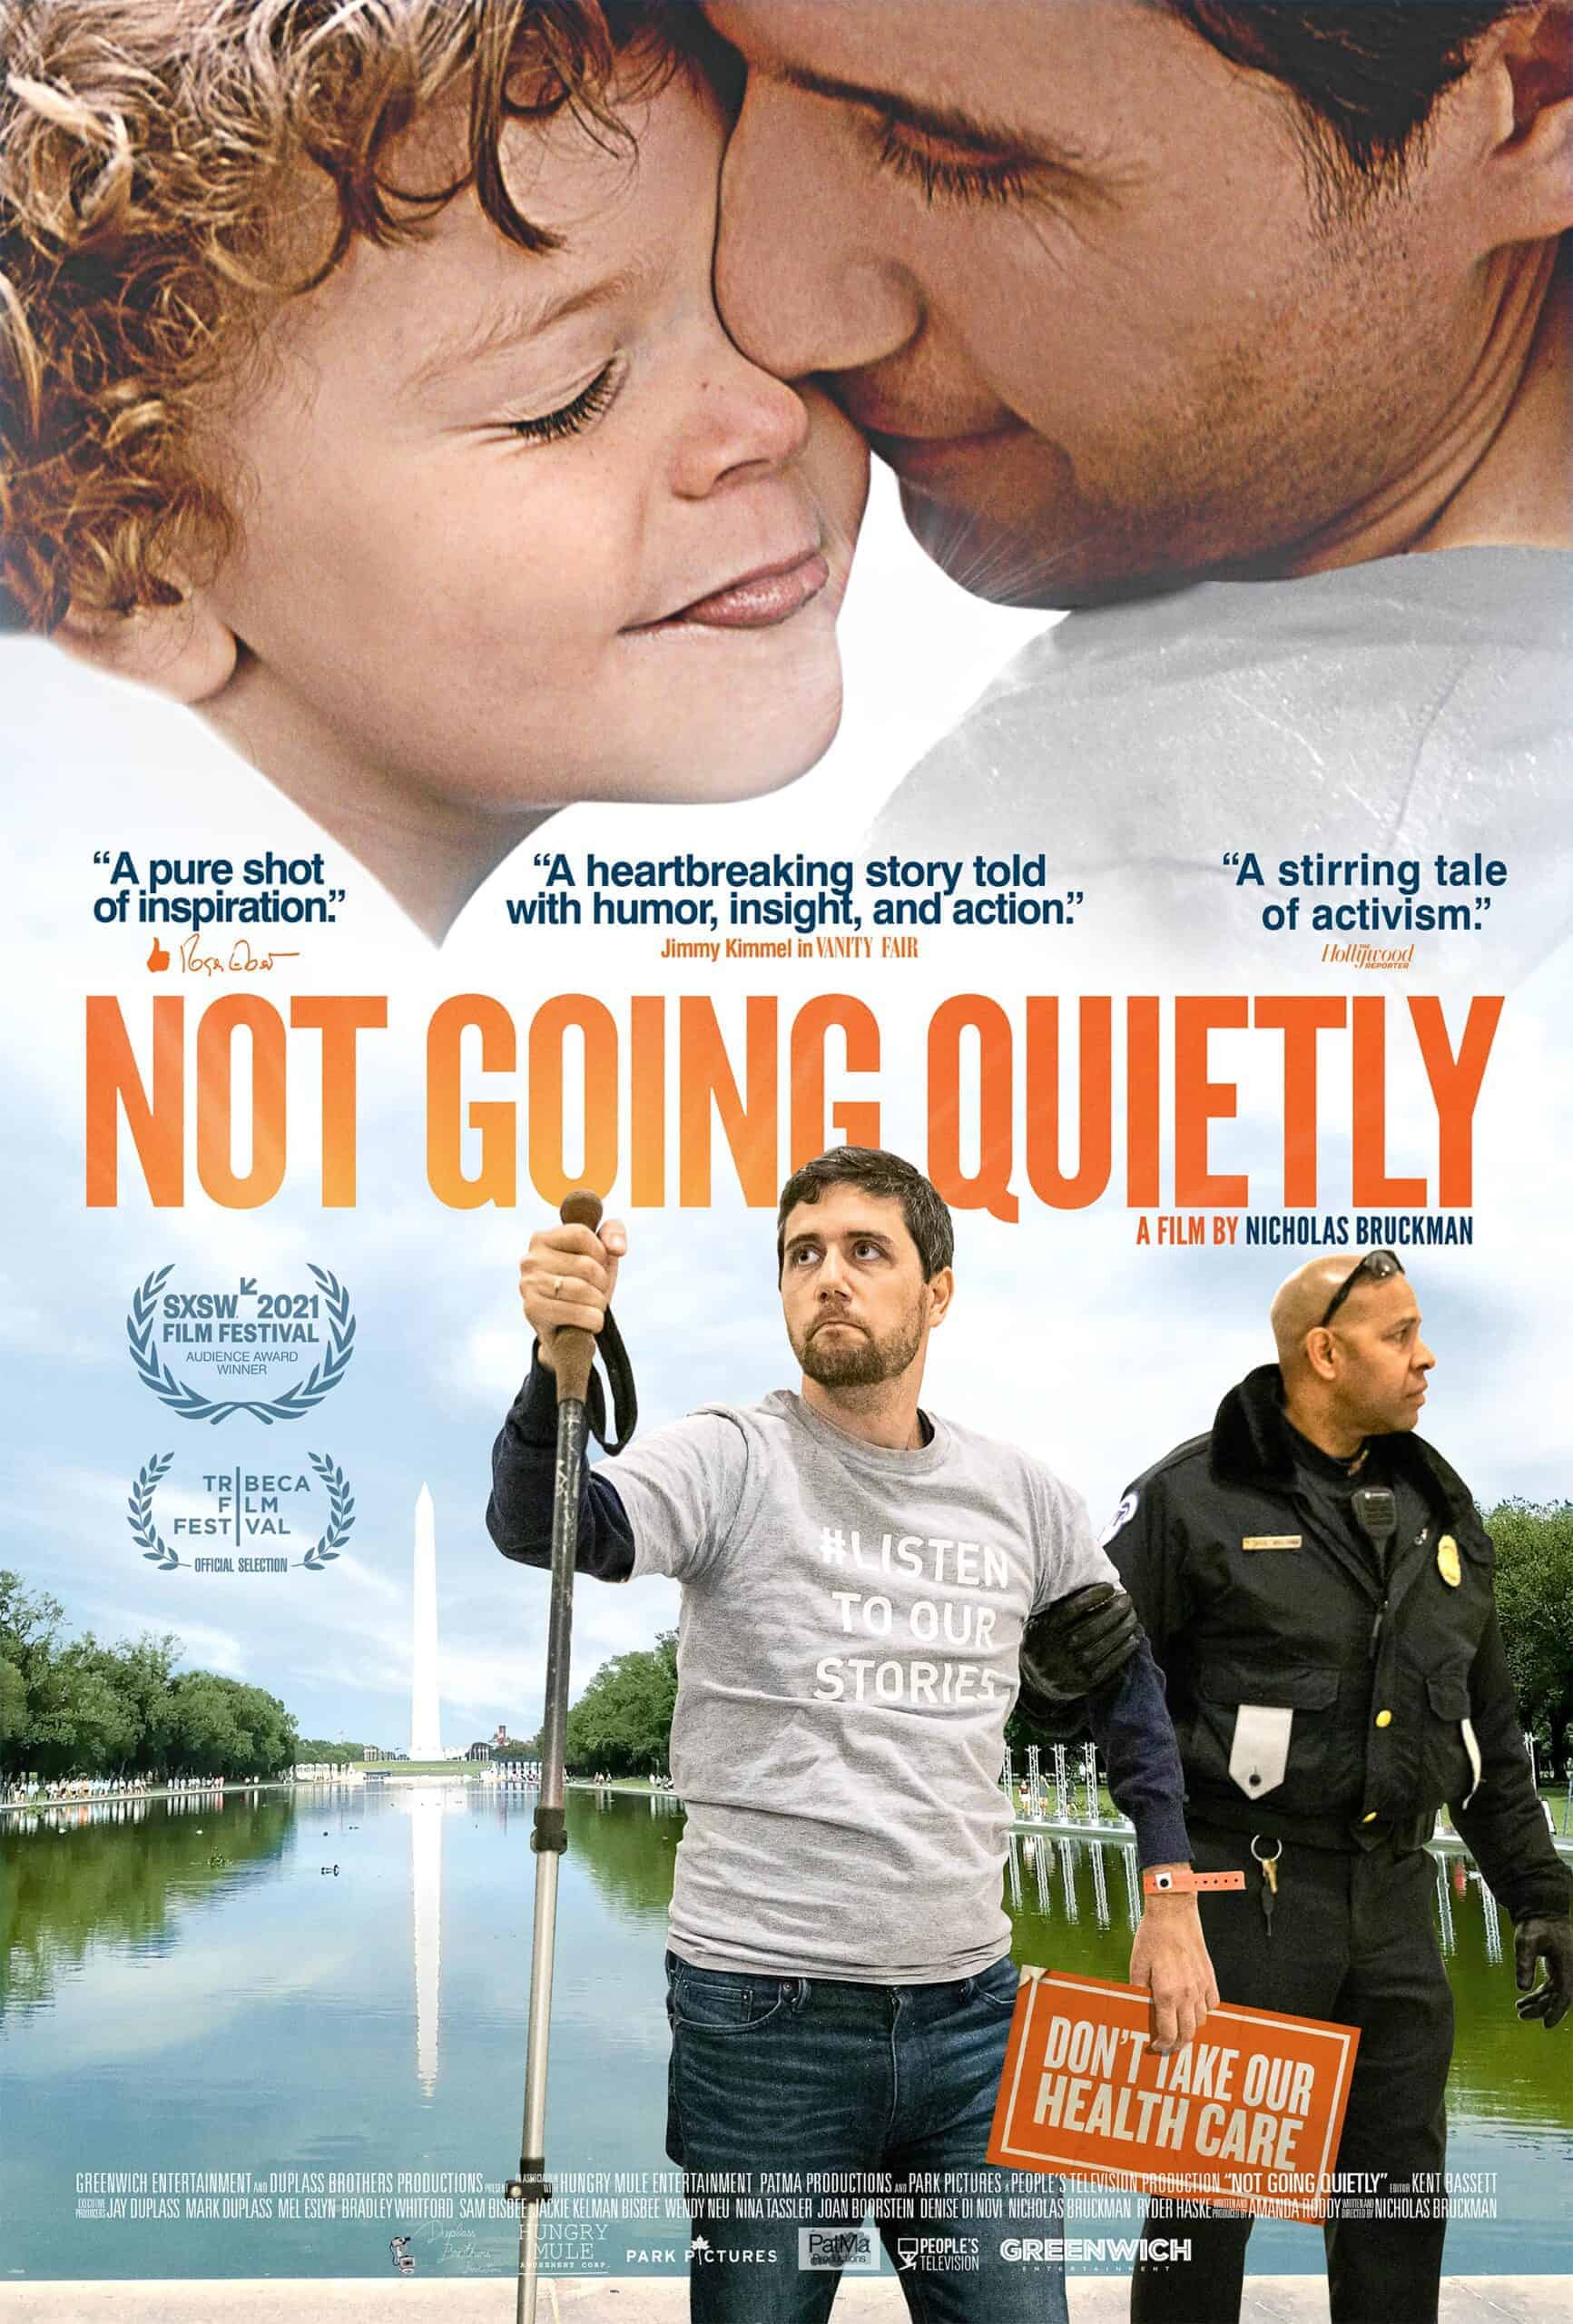 poster for Not Going Quietly